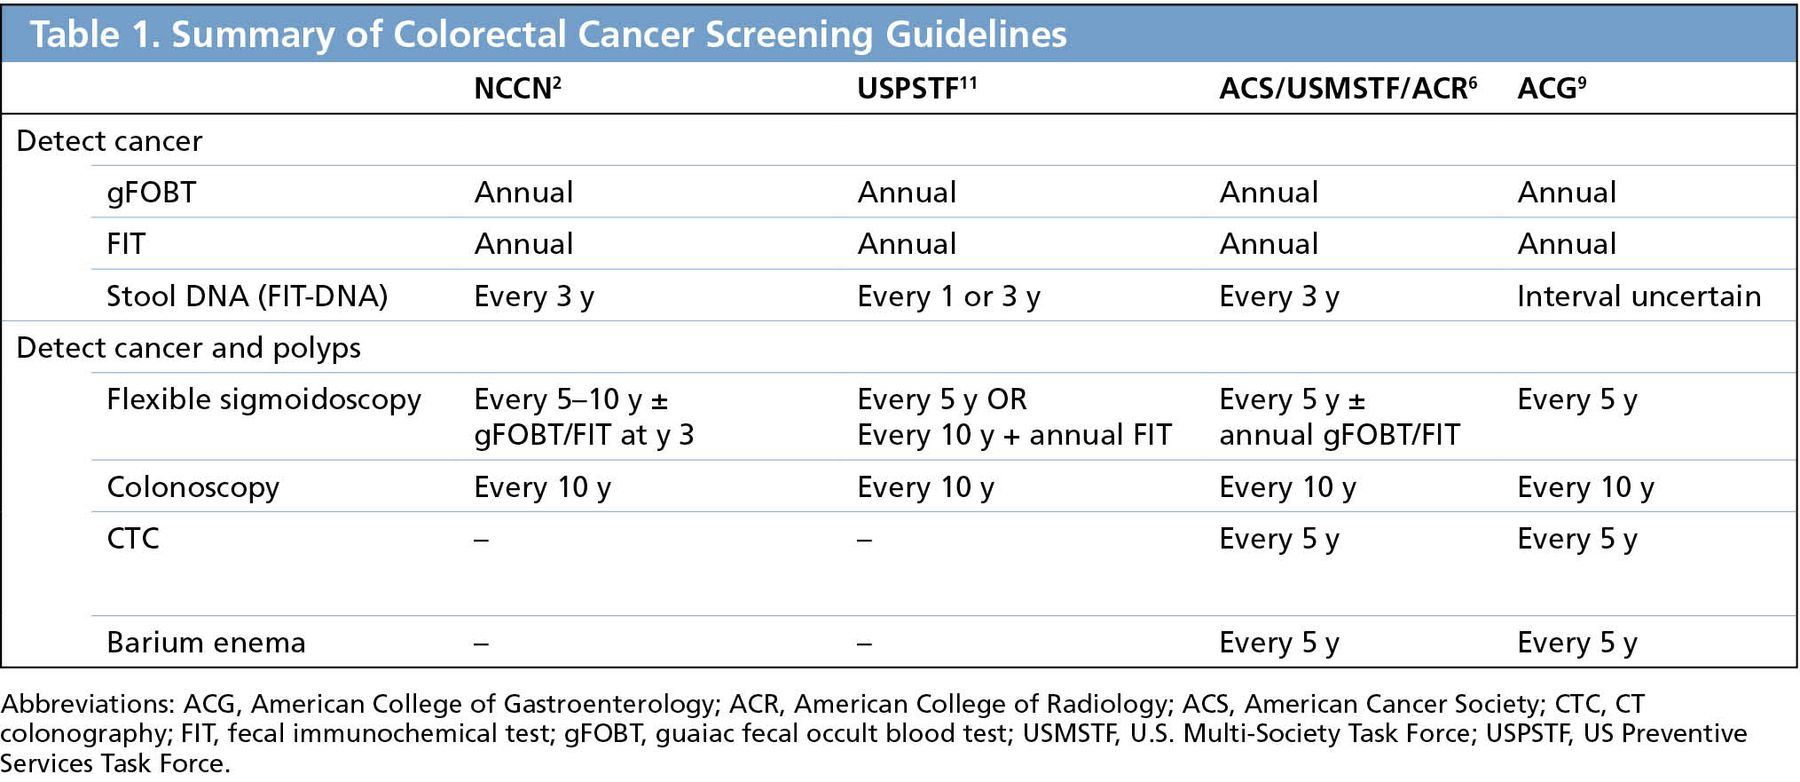 Use Of Nccn Guidelines Other Guidelines And Biomarkers For Colorectal Cancer Screening In Journal Of The National Comprehensive Cancer Network Volume 14 Issue 11 2016